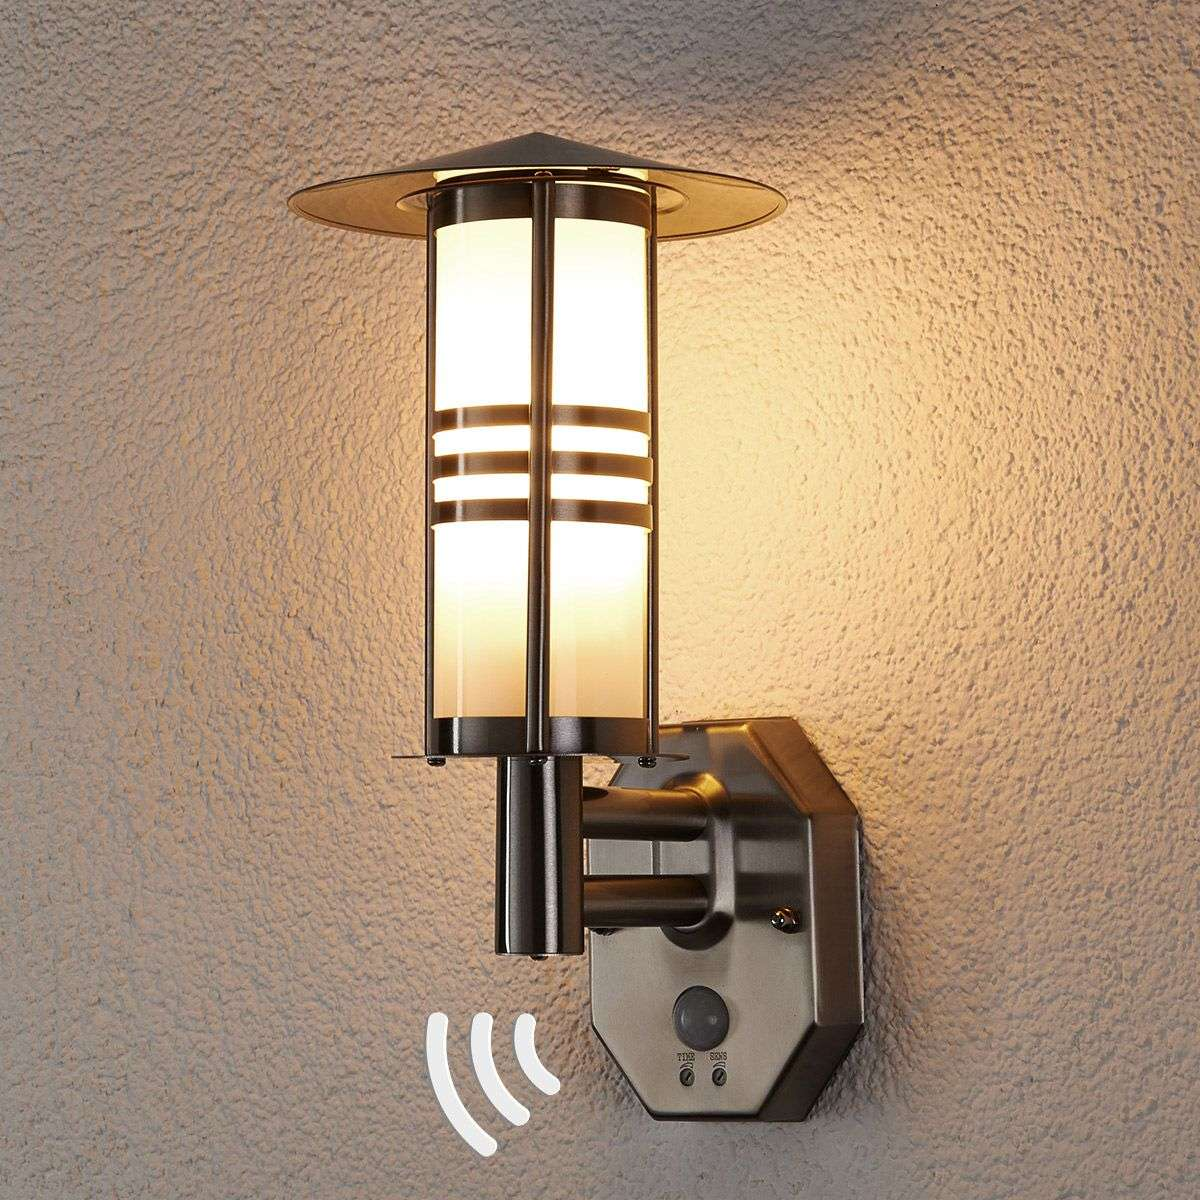 Erina motion detector outdoor wall lamp lights erina motion detector outdoor wall lamp 9960014 31 aloadofball Gallery